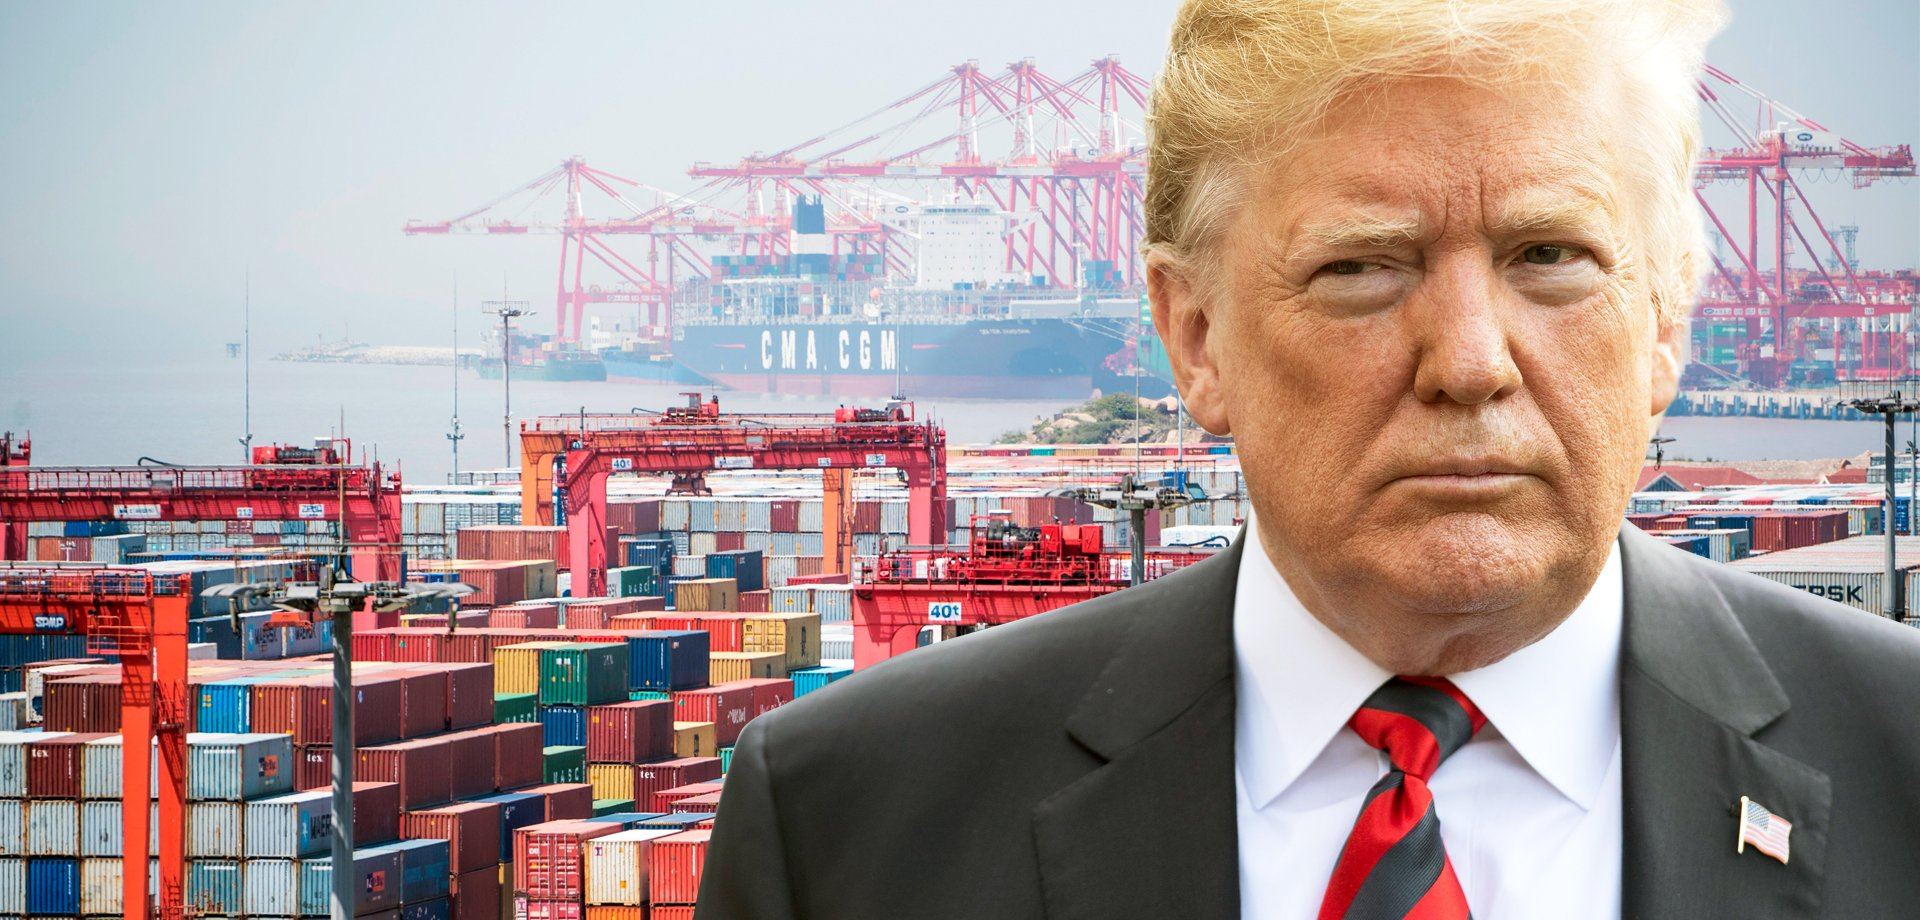 The Trump administration's protectionist measures on trade are piling up — and so are the retaliatory moves from a spate of other countries. What began with small-scale U.S. tariffs on washing machines and solar panels has now broadened to include steel and aluminum from all over the world, plus hundreds of products from China. Those tariffs have prompted a tit for tat response from affected countries, which target key U.S. exports such as bourbon, motorcycles, and orange juice. And there could be more to come, with the Trump administration studying further tariffs on imported cars and threatening much more action against China.